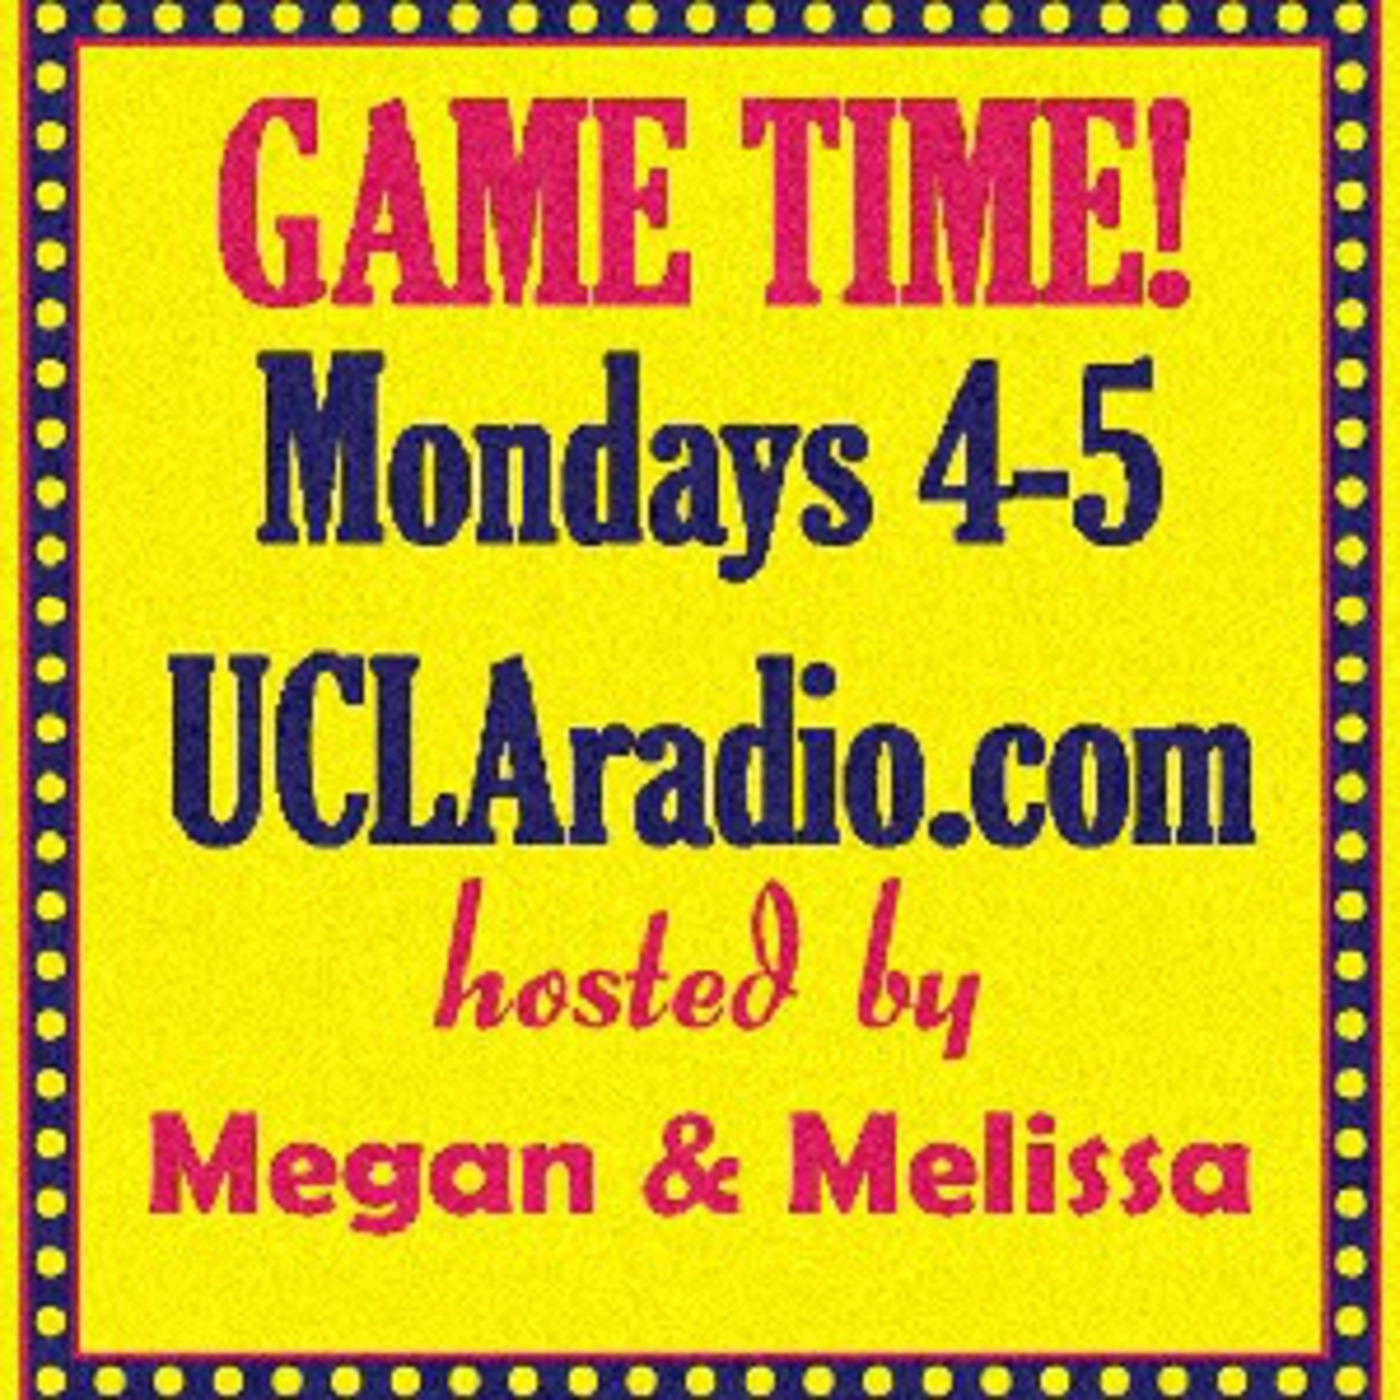 Game Time! On UCLARadio.com